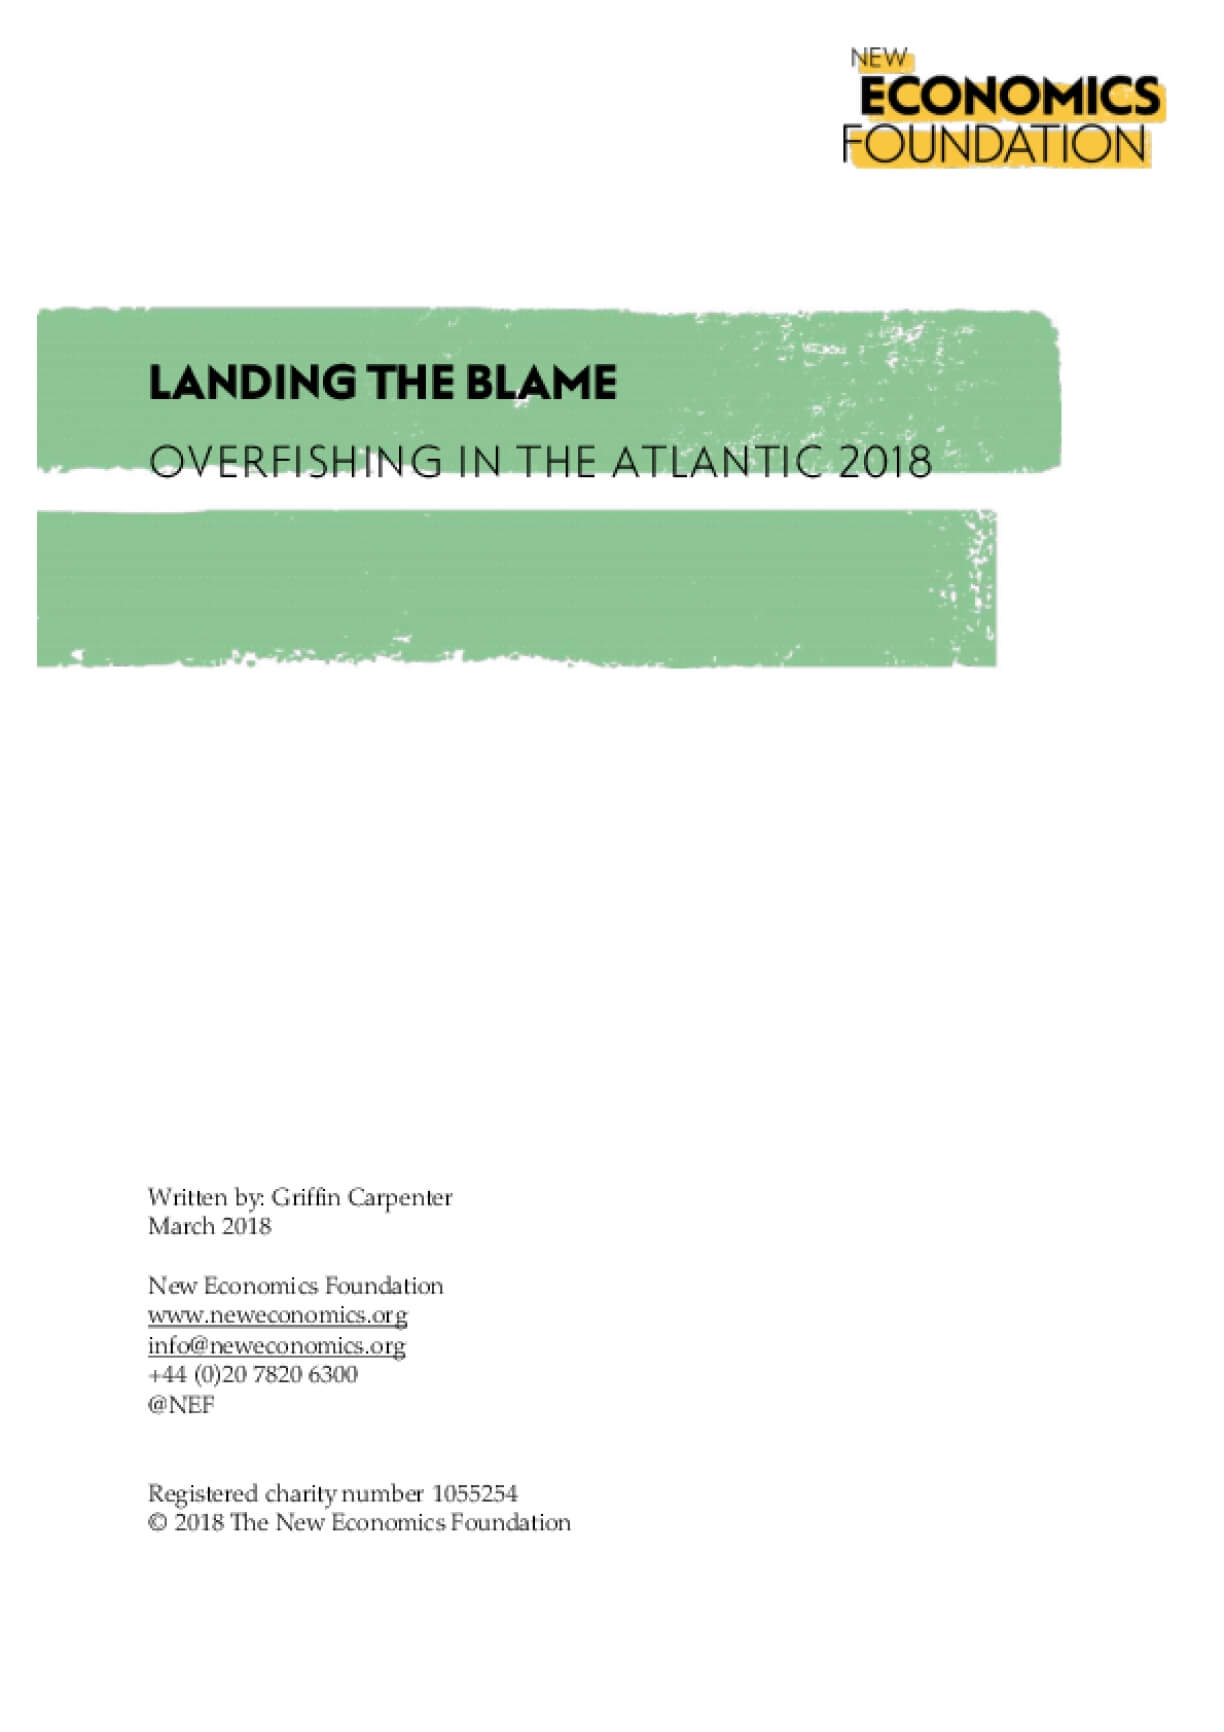 Landing the Blame: Overfishing in the Atlantic 2018